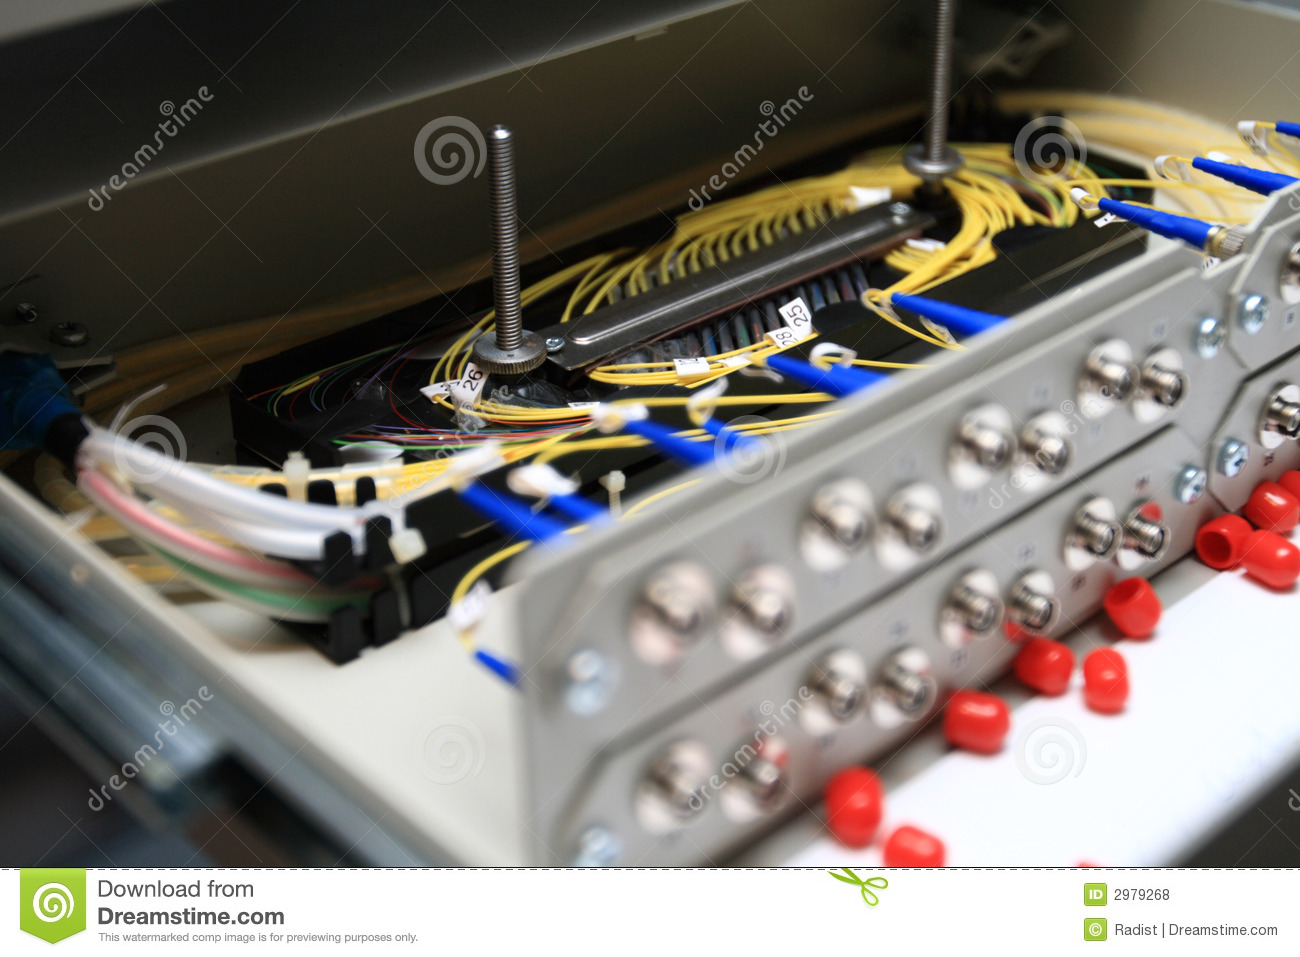 Telecom Equipment Royalty Free Stock Photos  Image 2979268